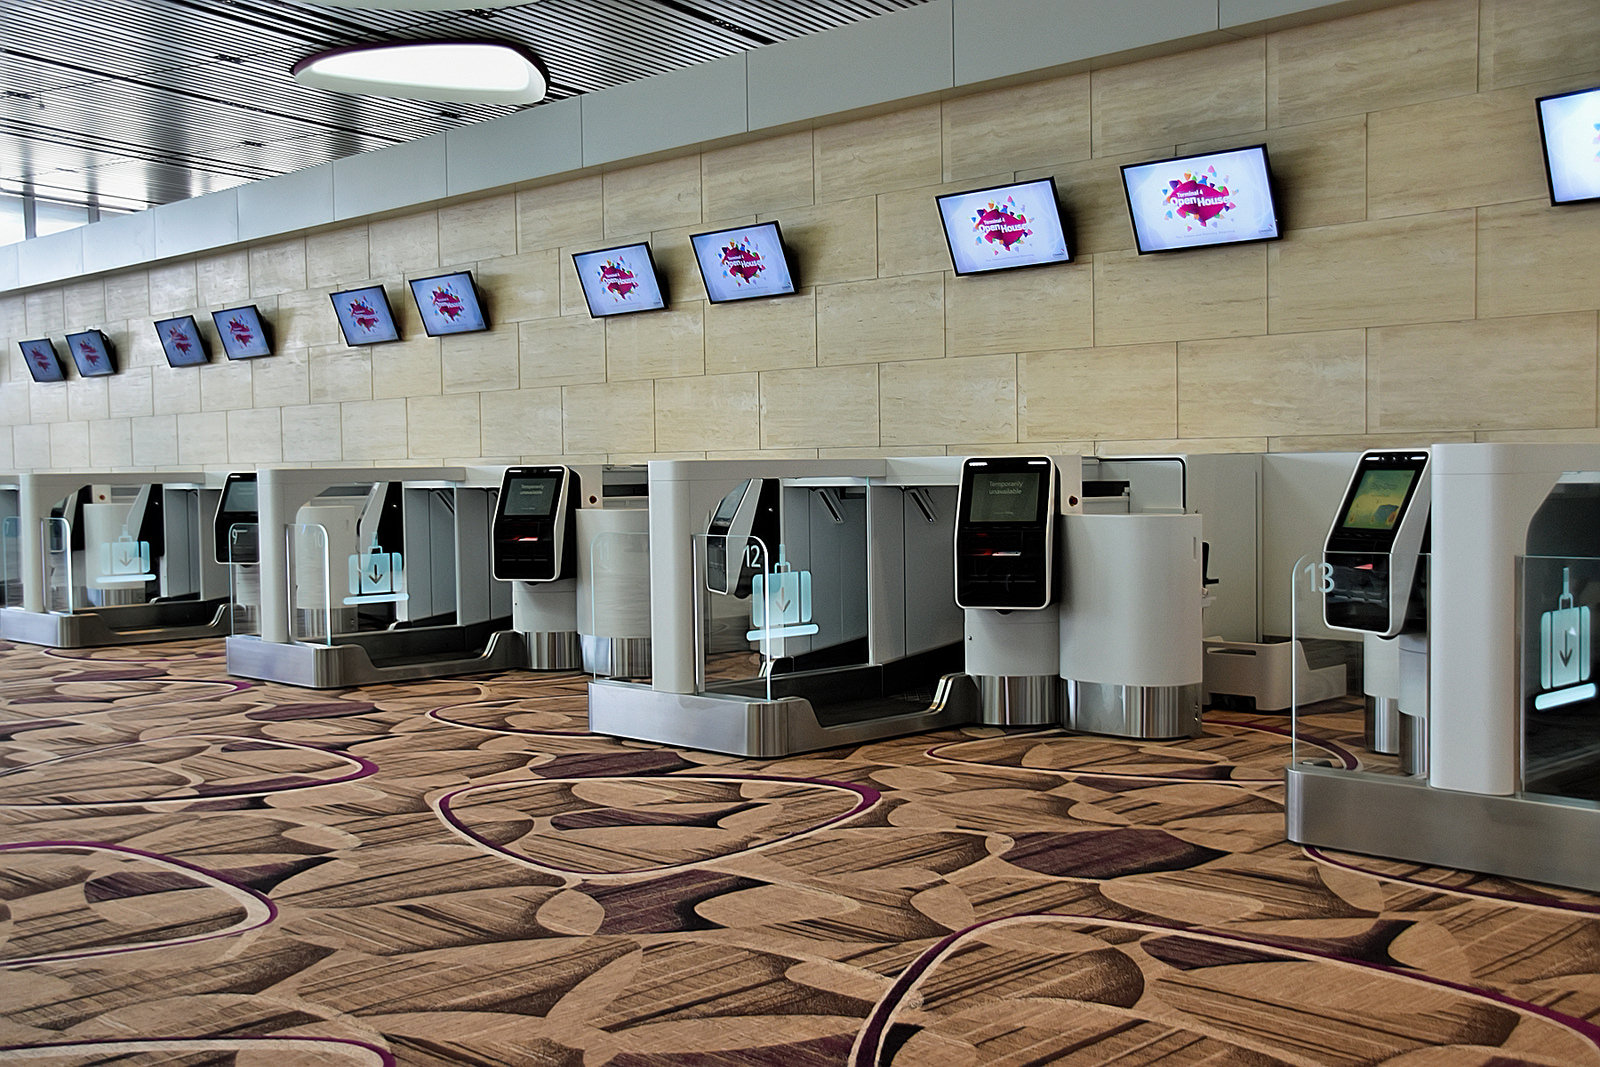 Changi Airport - Self Services